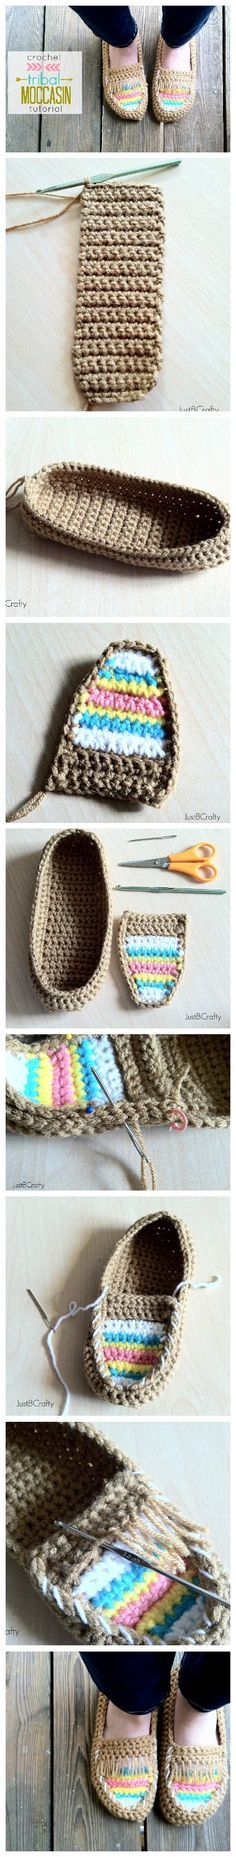 DIY Crochet Tribal Moccasin – Free Pattern ☂ᙓᖇᗴᔕᗩ ᖇᙓᔕ☂ᙓᘐᘎᓮ http://www.pinterest.com/teretegui